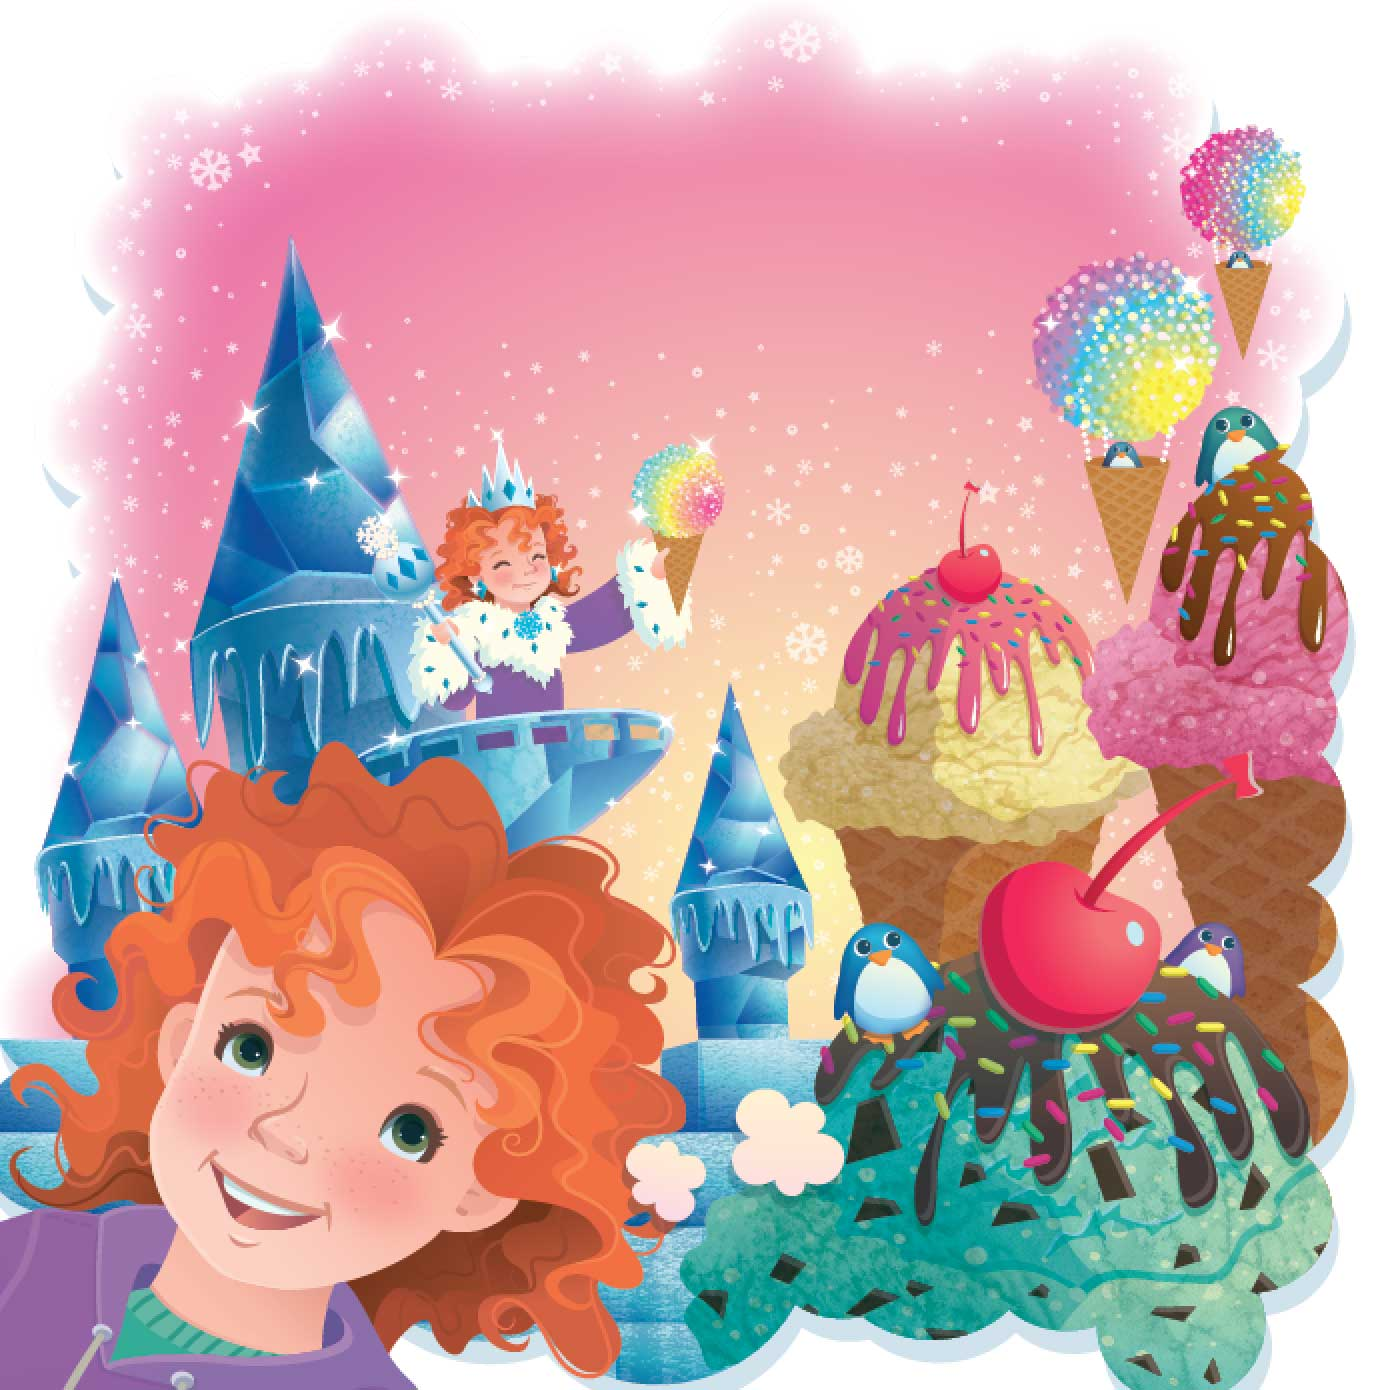 Jamie Tablason Illustration icequeen Ice cream dream